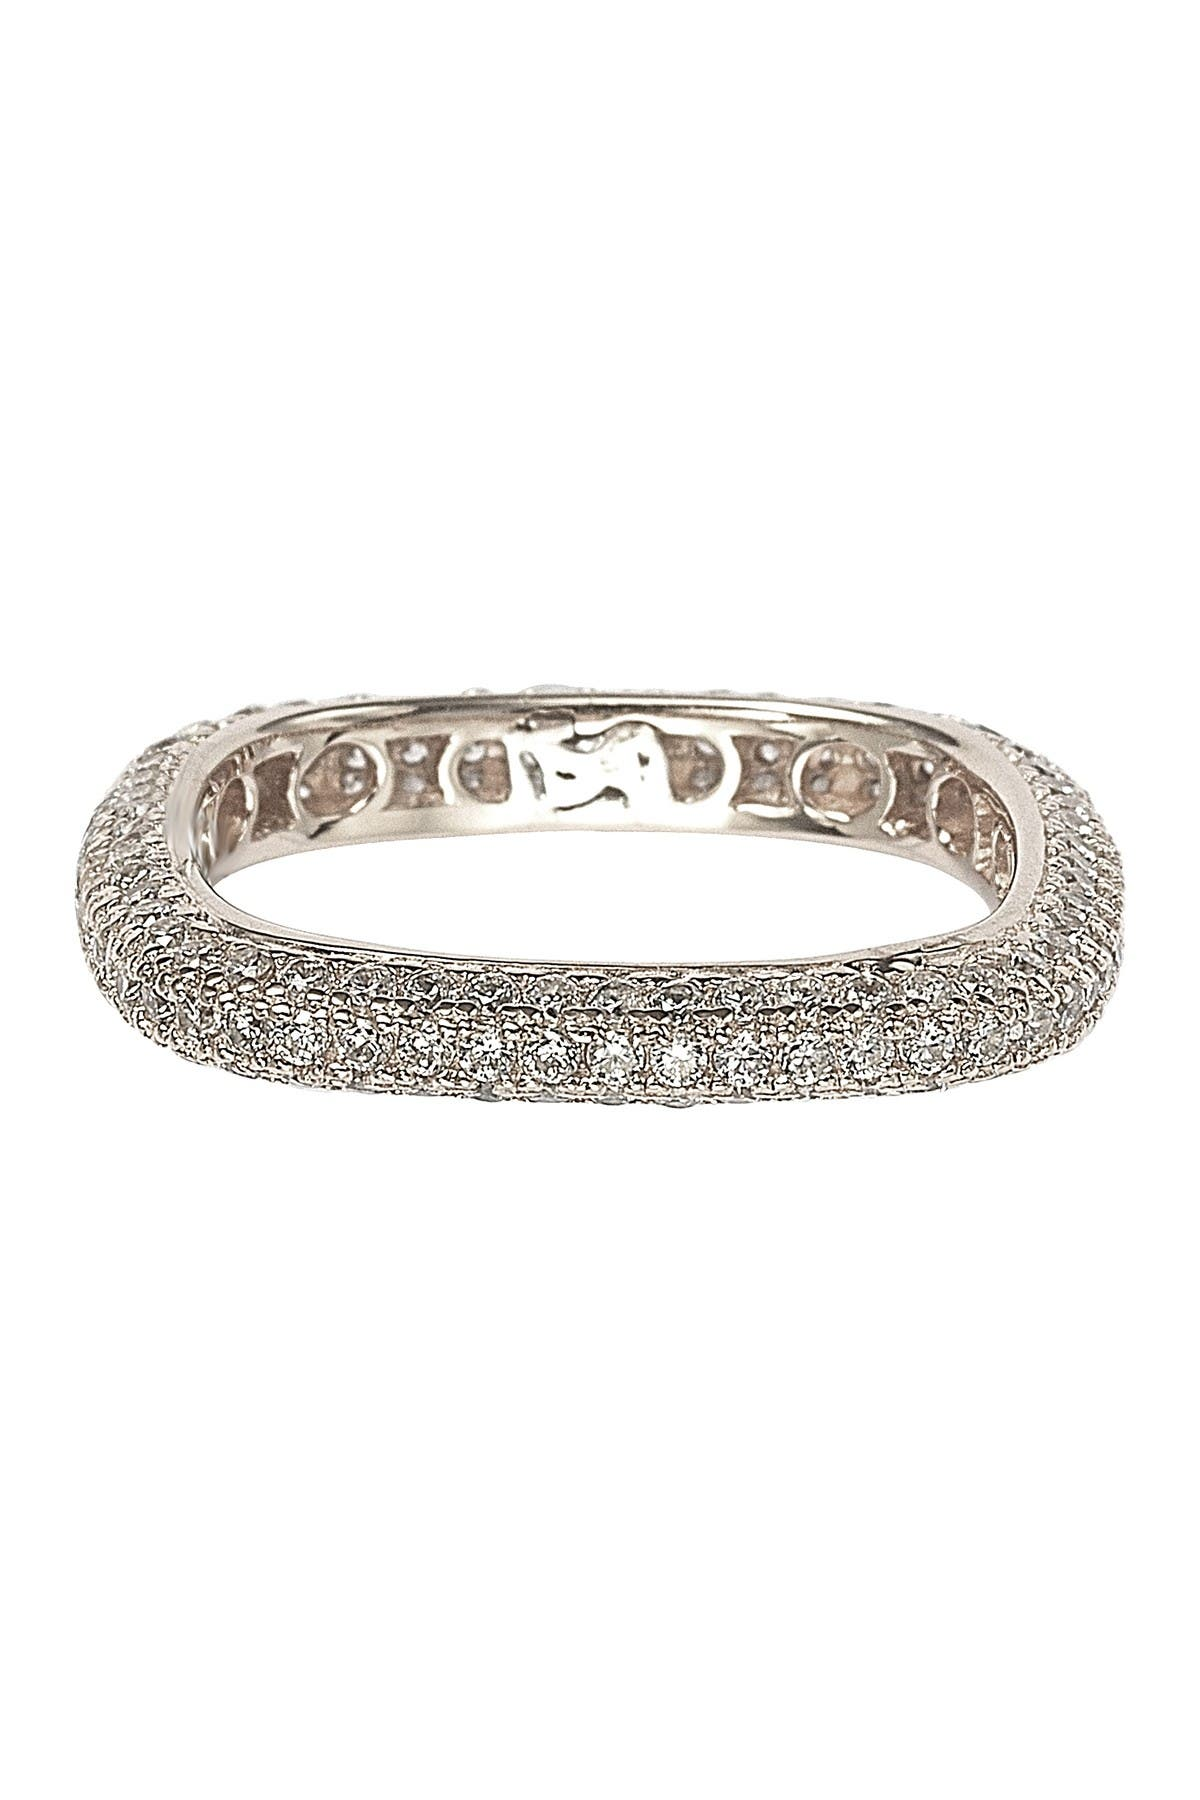 Image of Suzy Levian Sterling Silver Pave CZ Square Stackable Eternity Band Ring